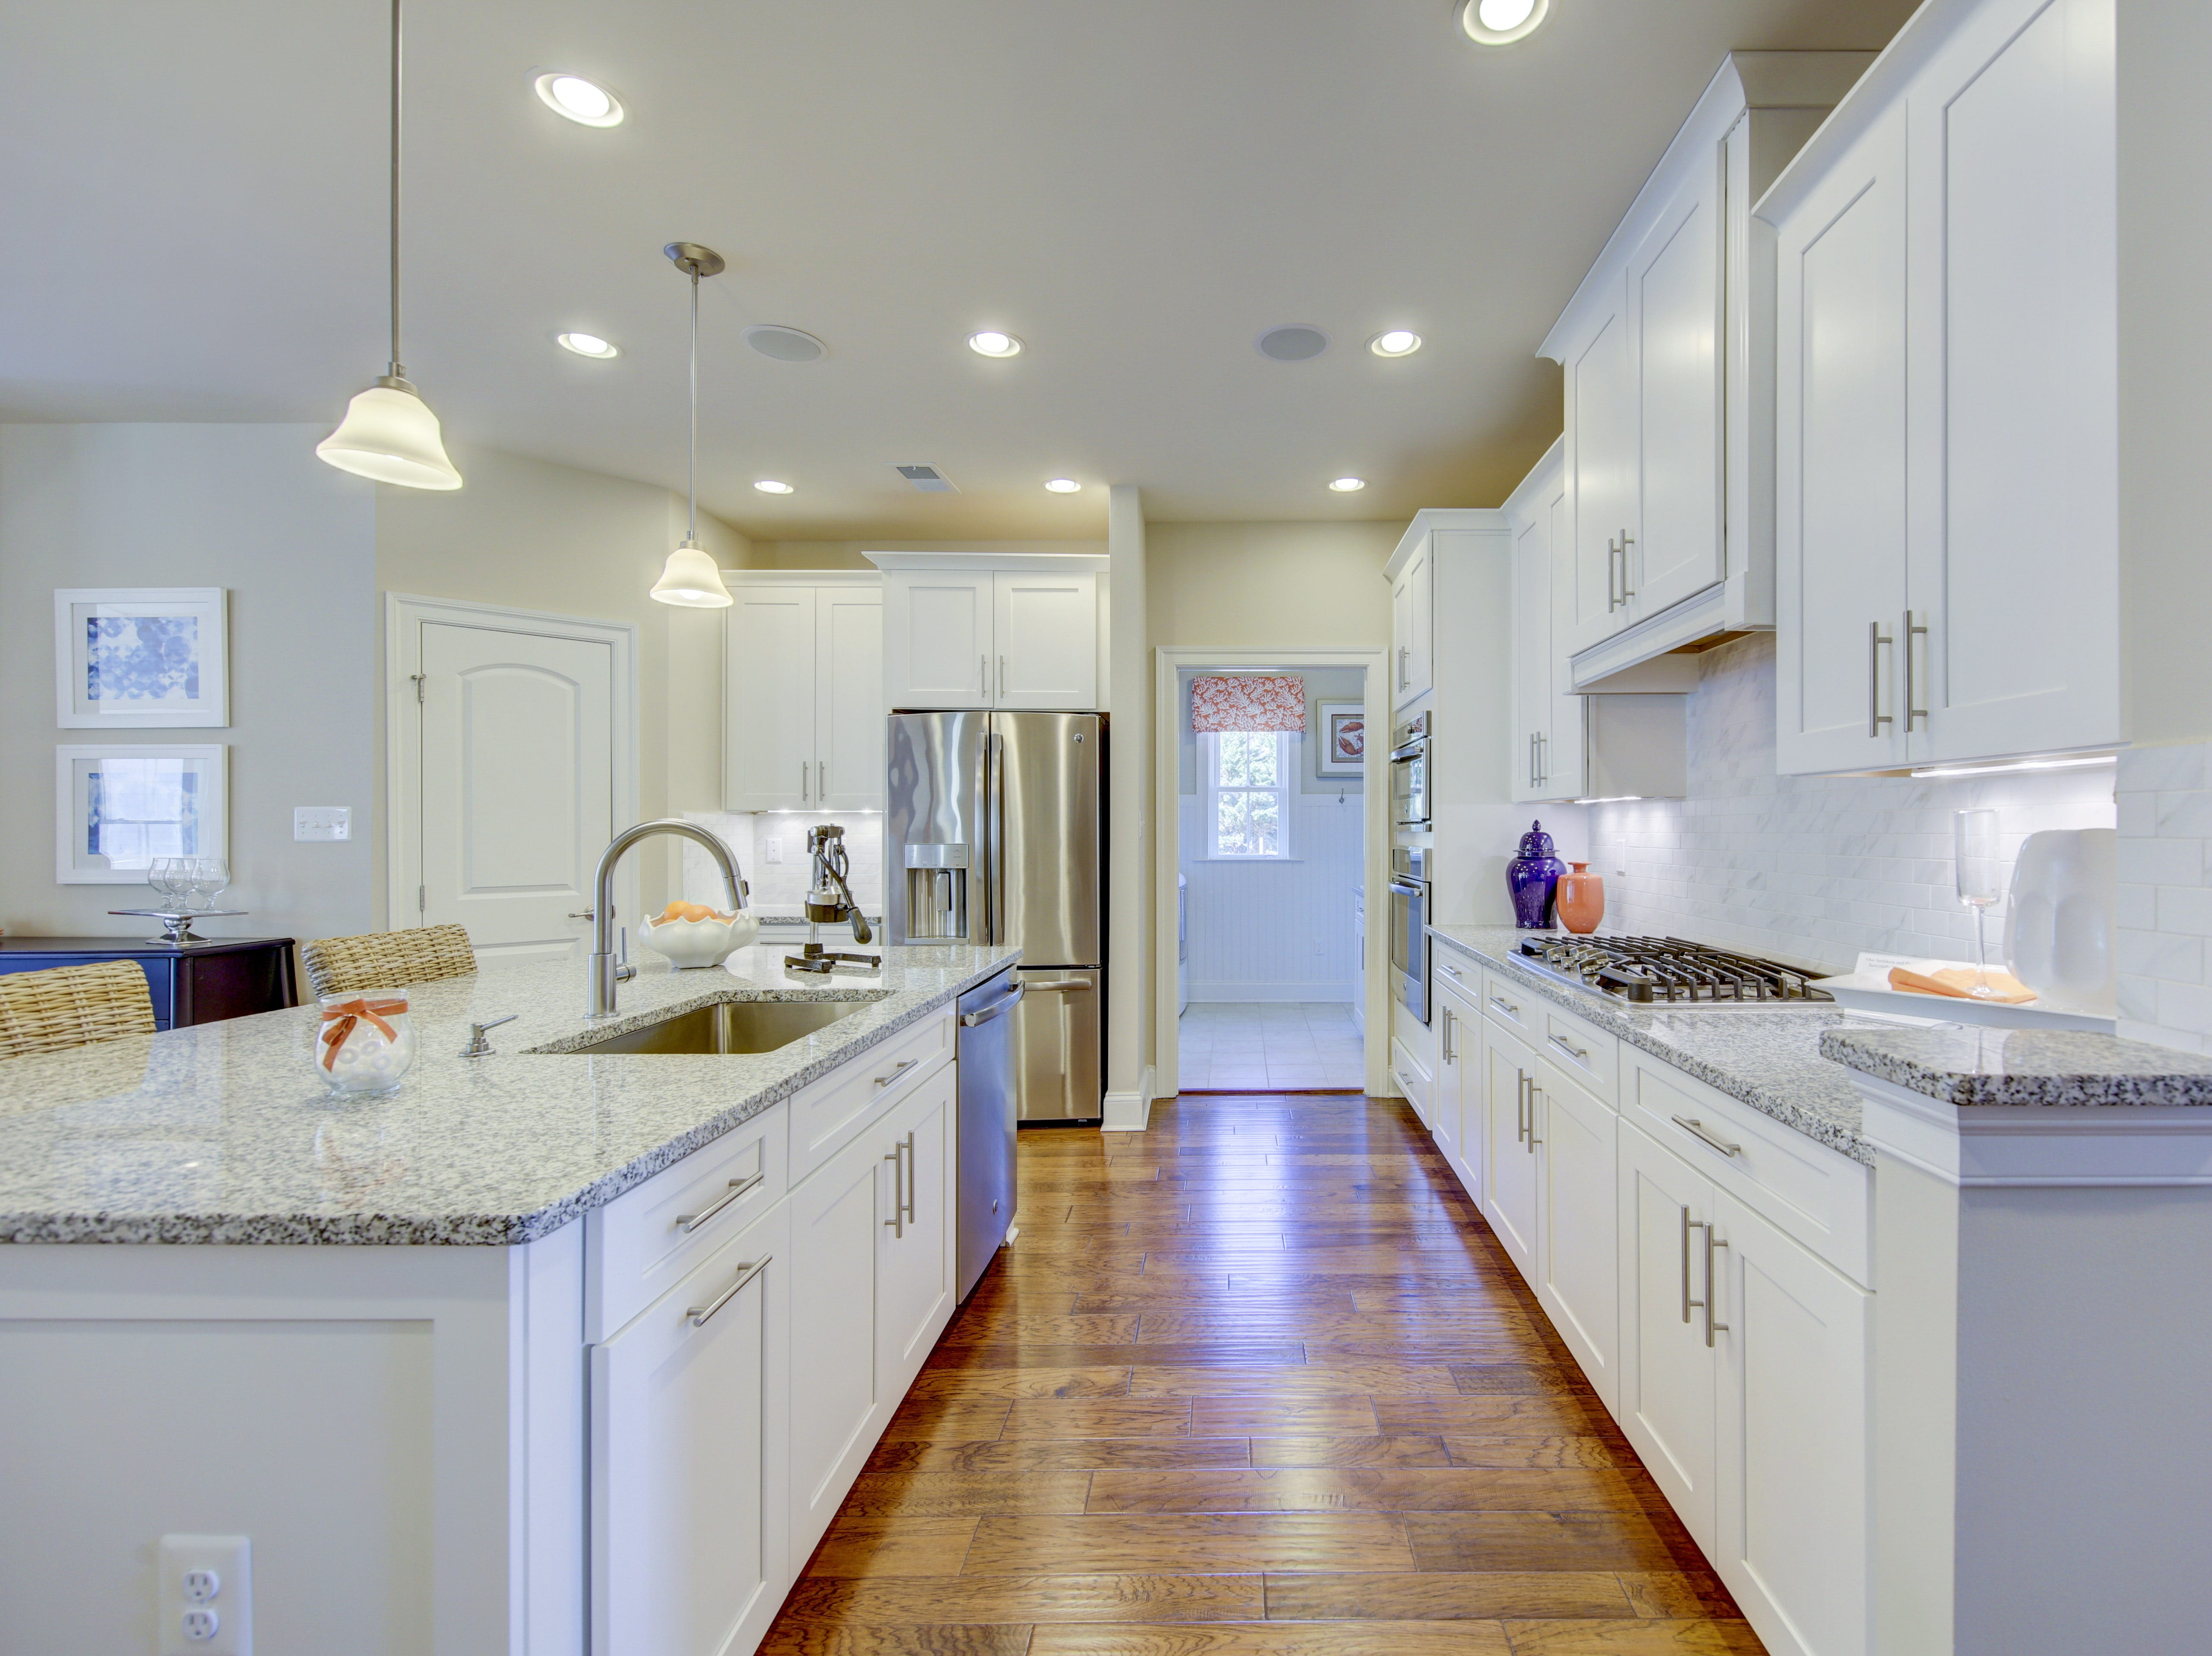 Granite countertops in the model's home kitchen are an upgrade at The Overlook in Selbyville.